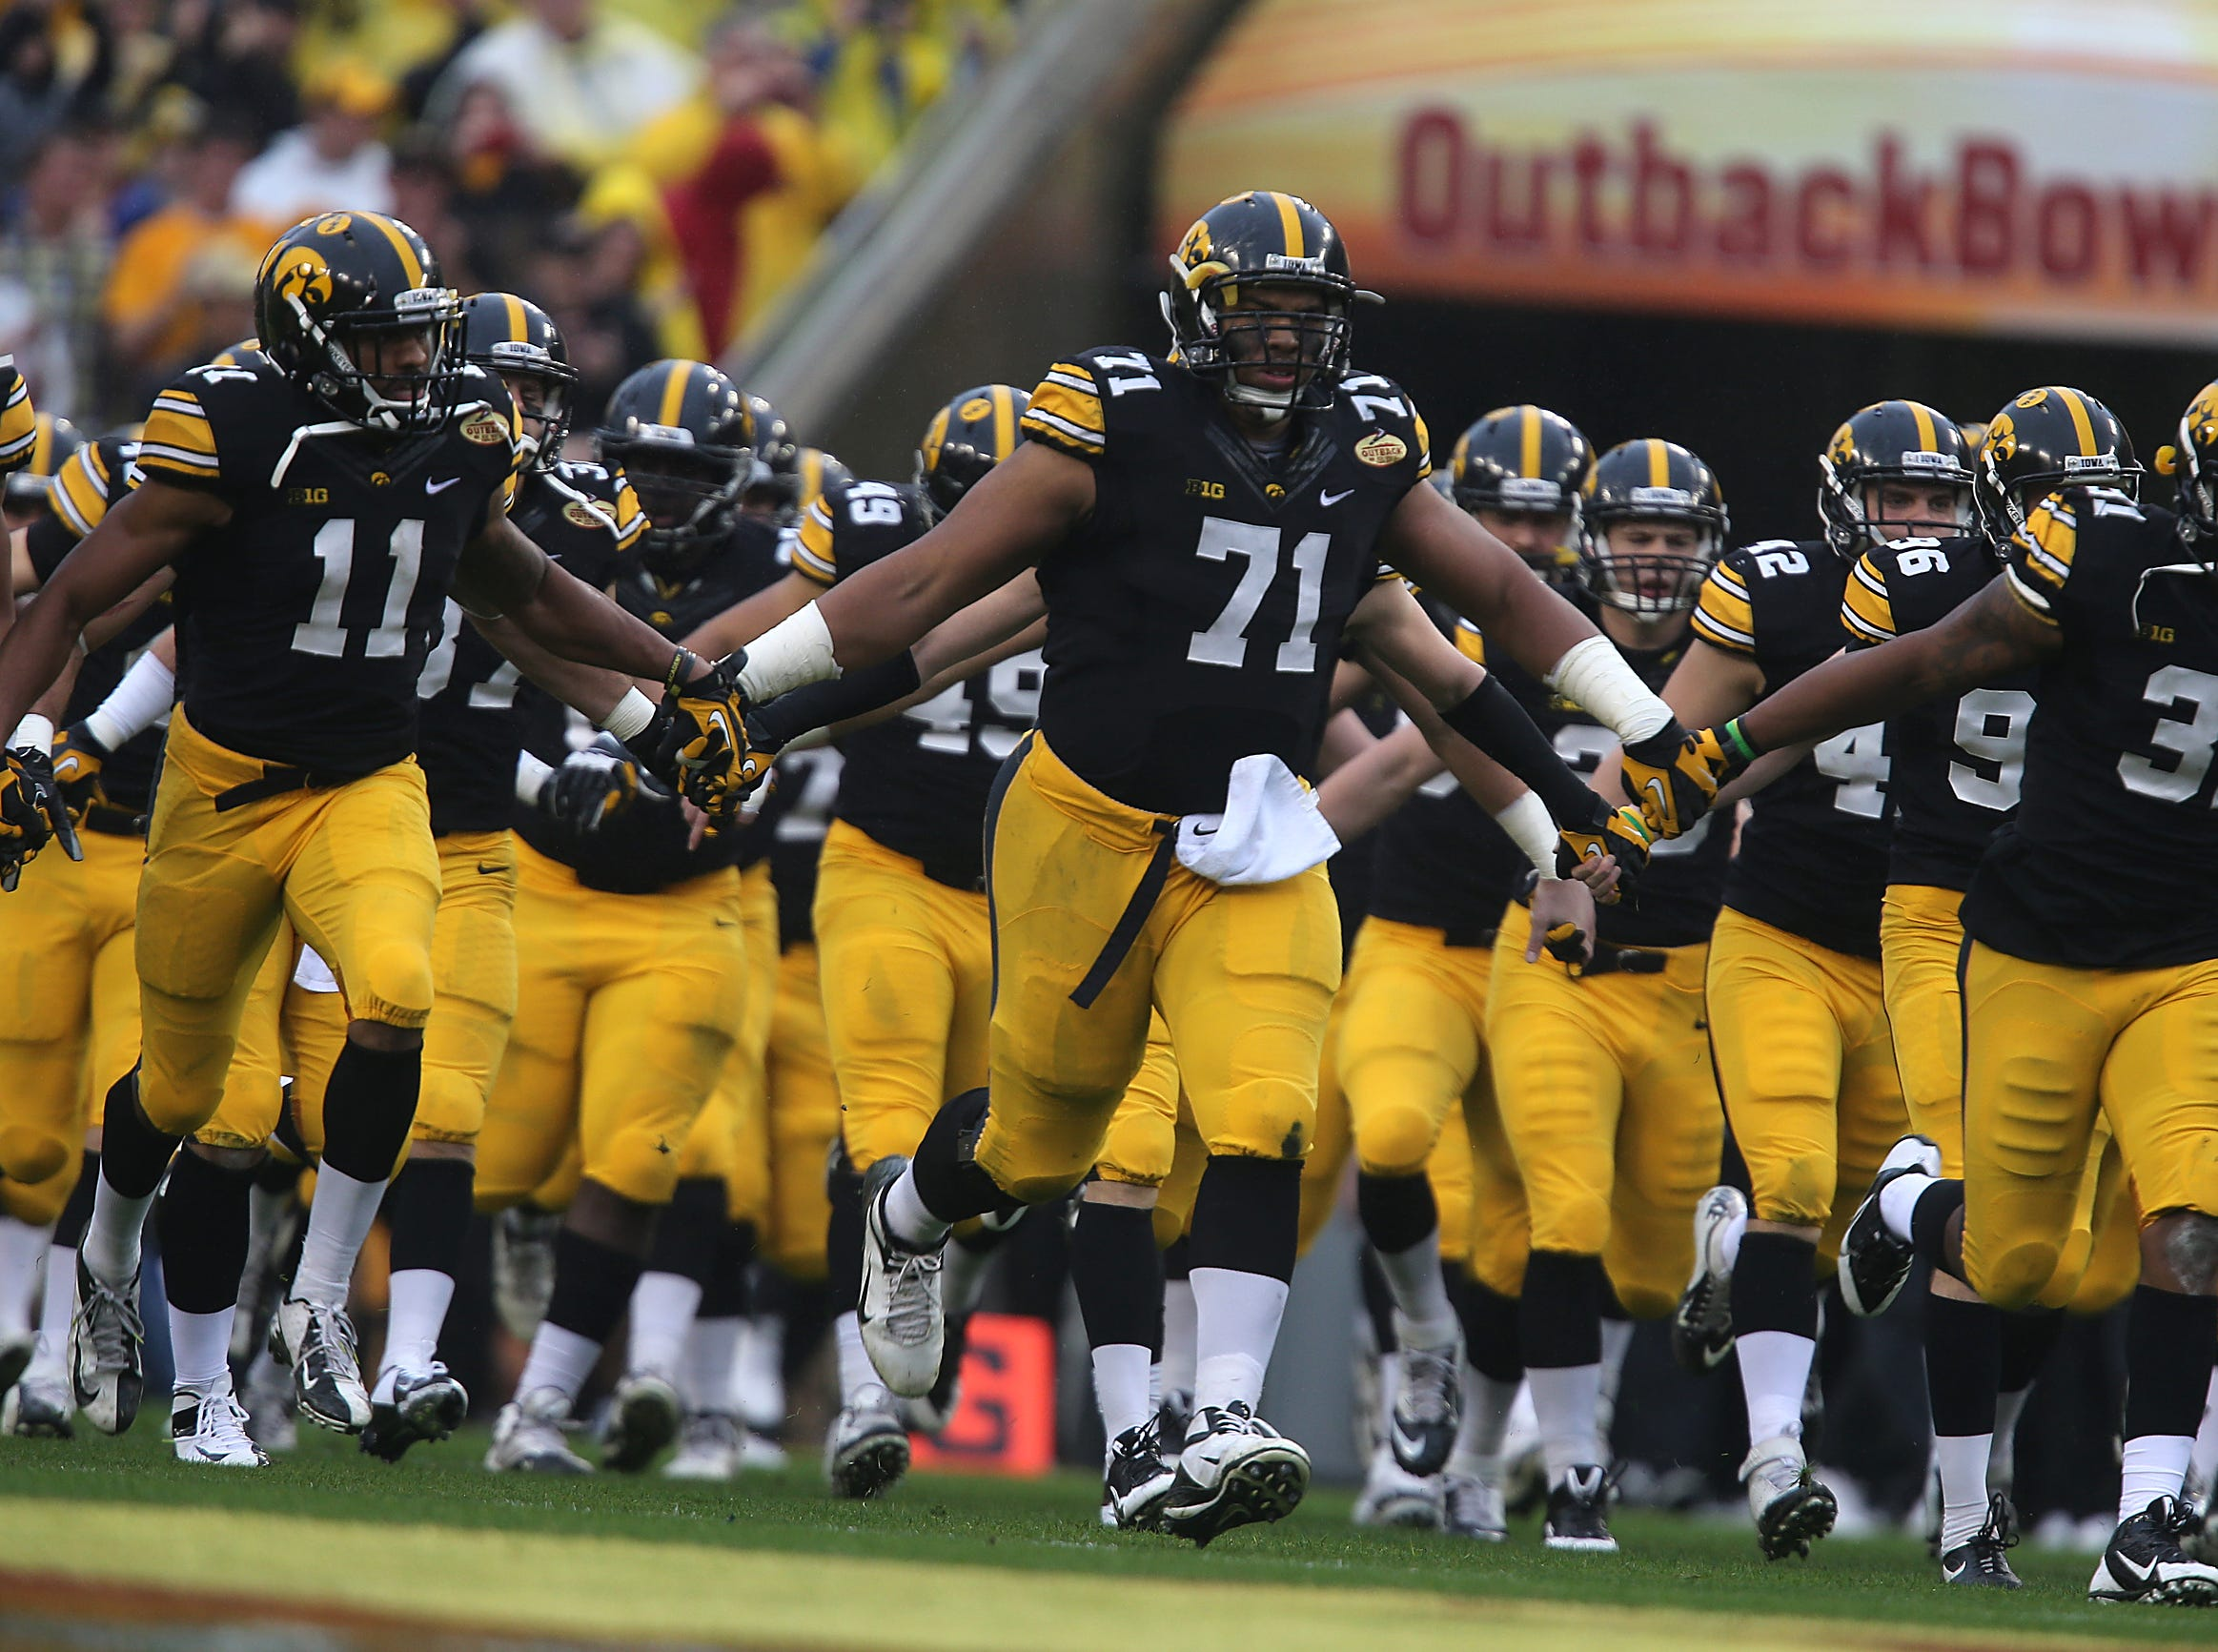 Iowa defensive lineman Carl Davis (71) and the Hawkeyes take the field prior to kickoff against LSU in the Outback Bowl on Wednesday, Jan. 1, 2014, in Tampa, Florida. (Bryon Houlgrave/The Register)